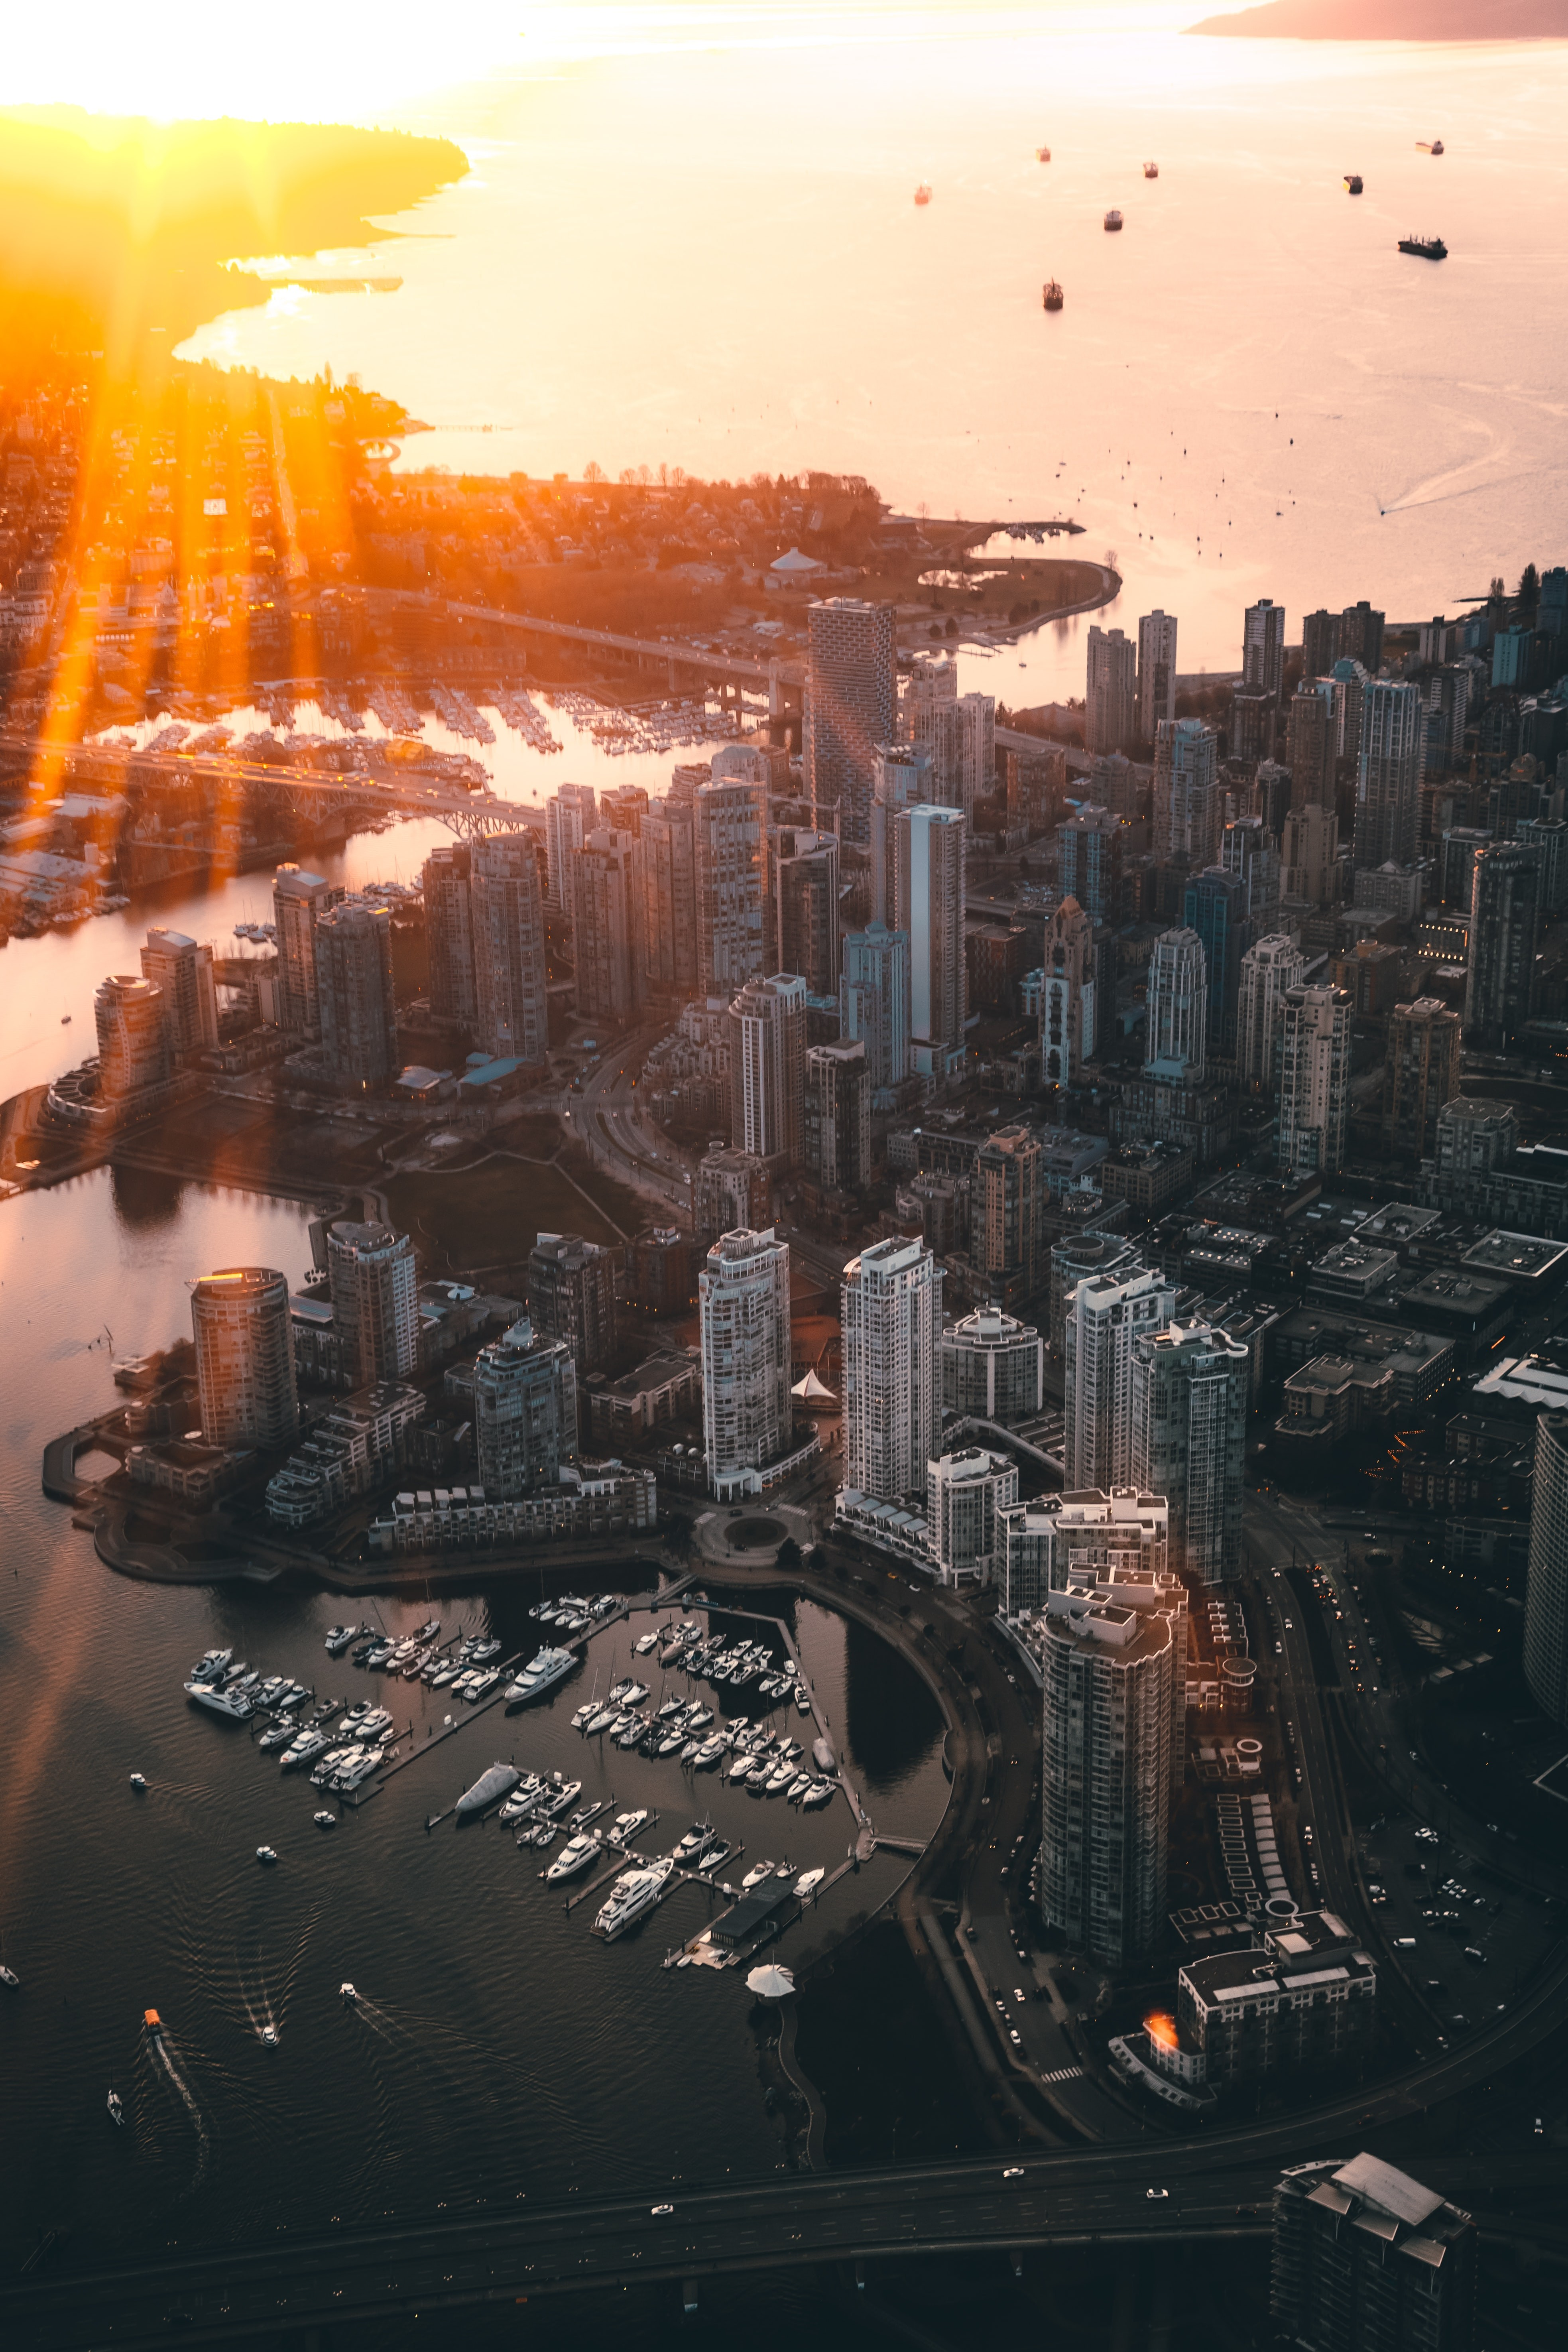 Vancouver Image #1